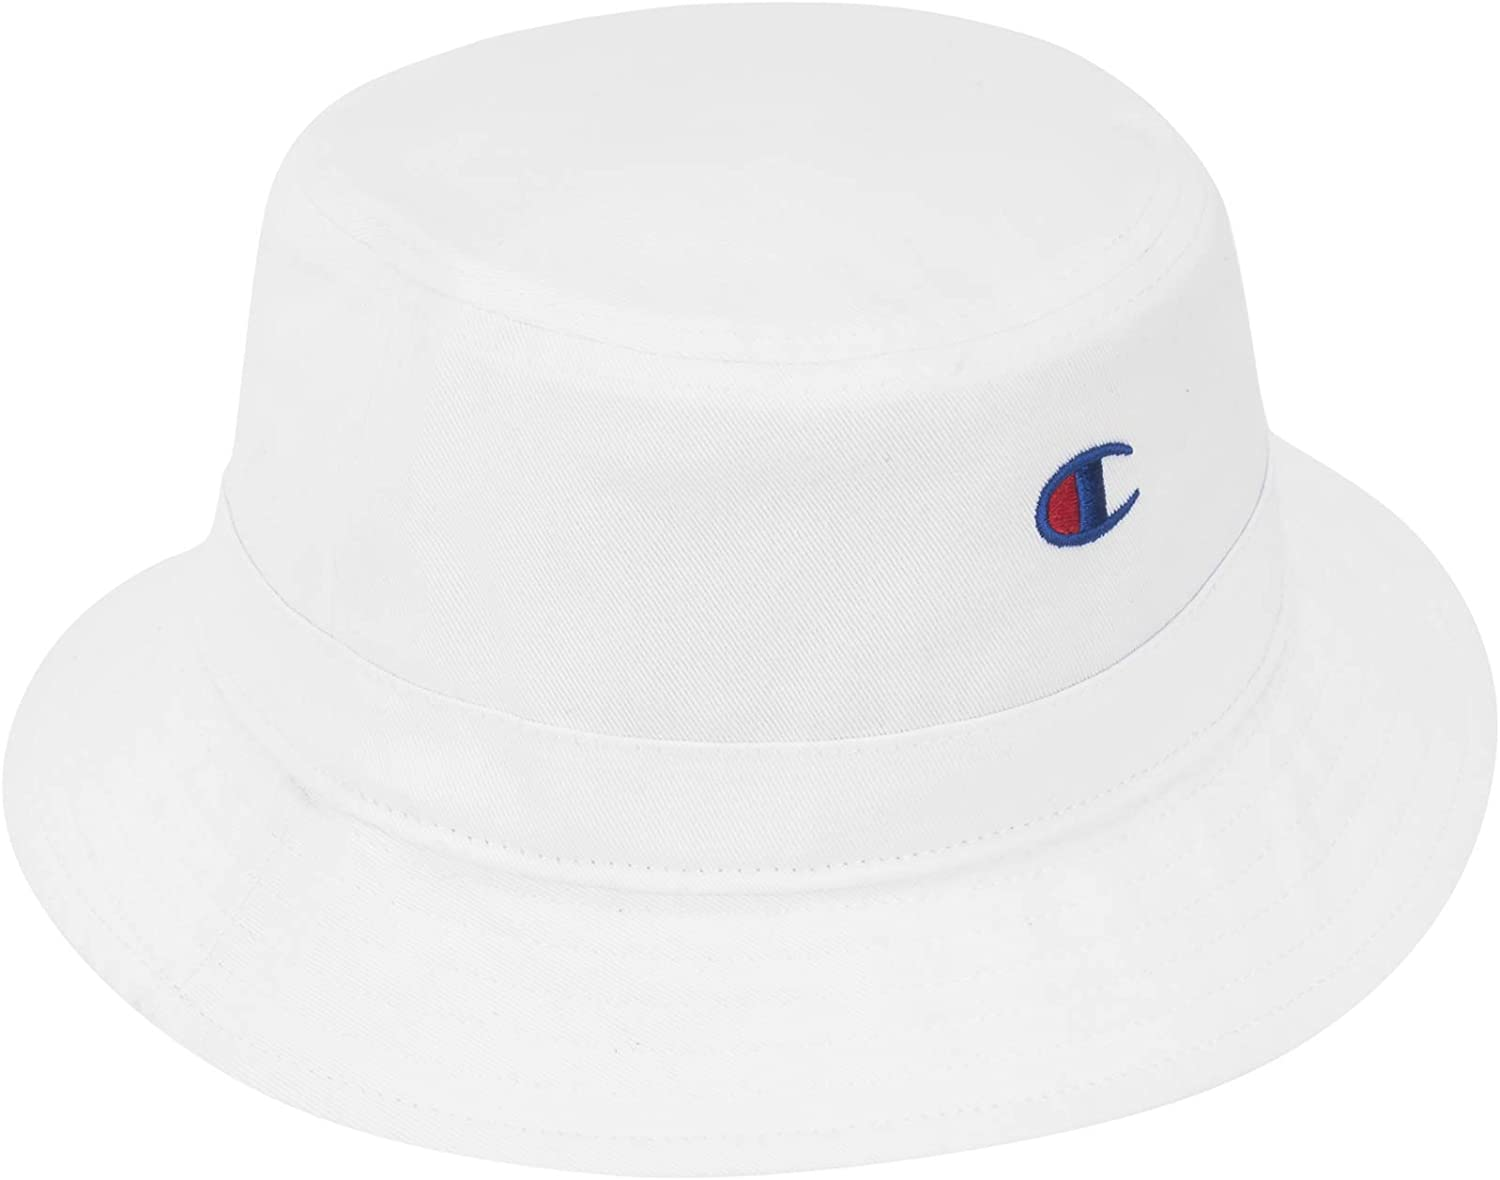 Champion Embroidered Logo Bucket Hat : Clothing, Shoes & Jewelry